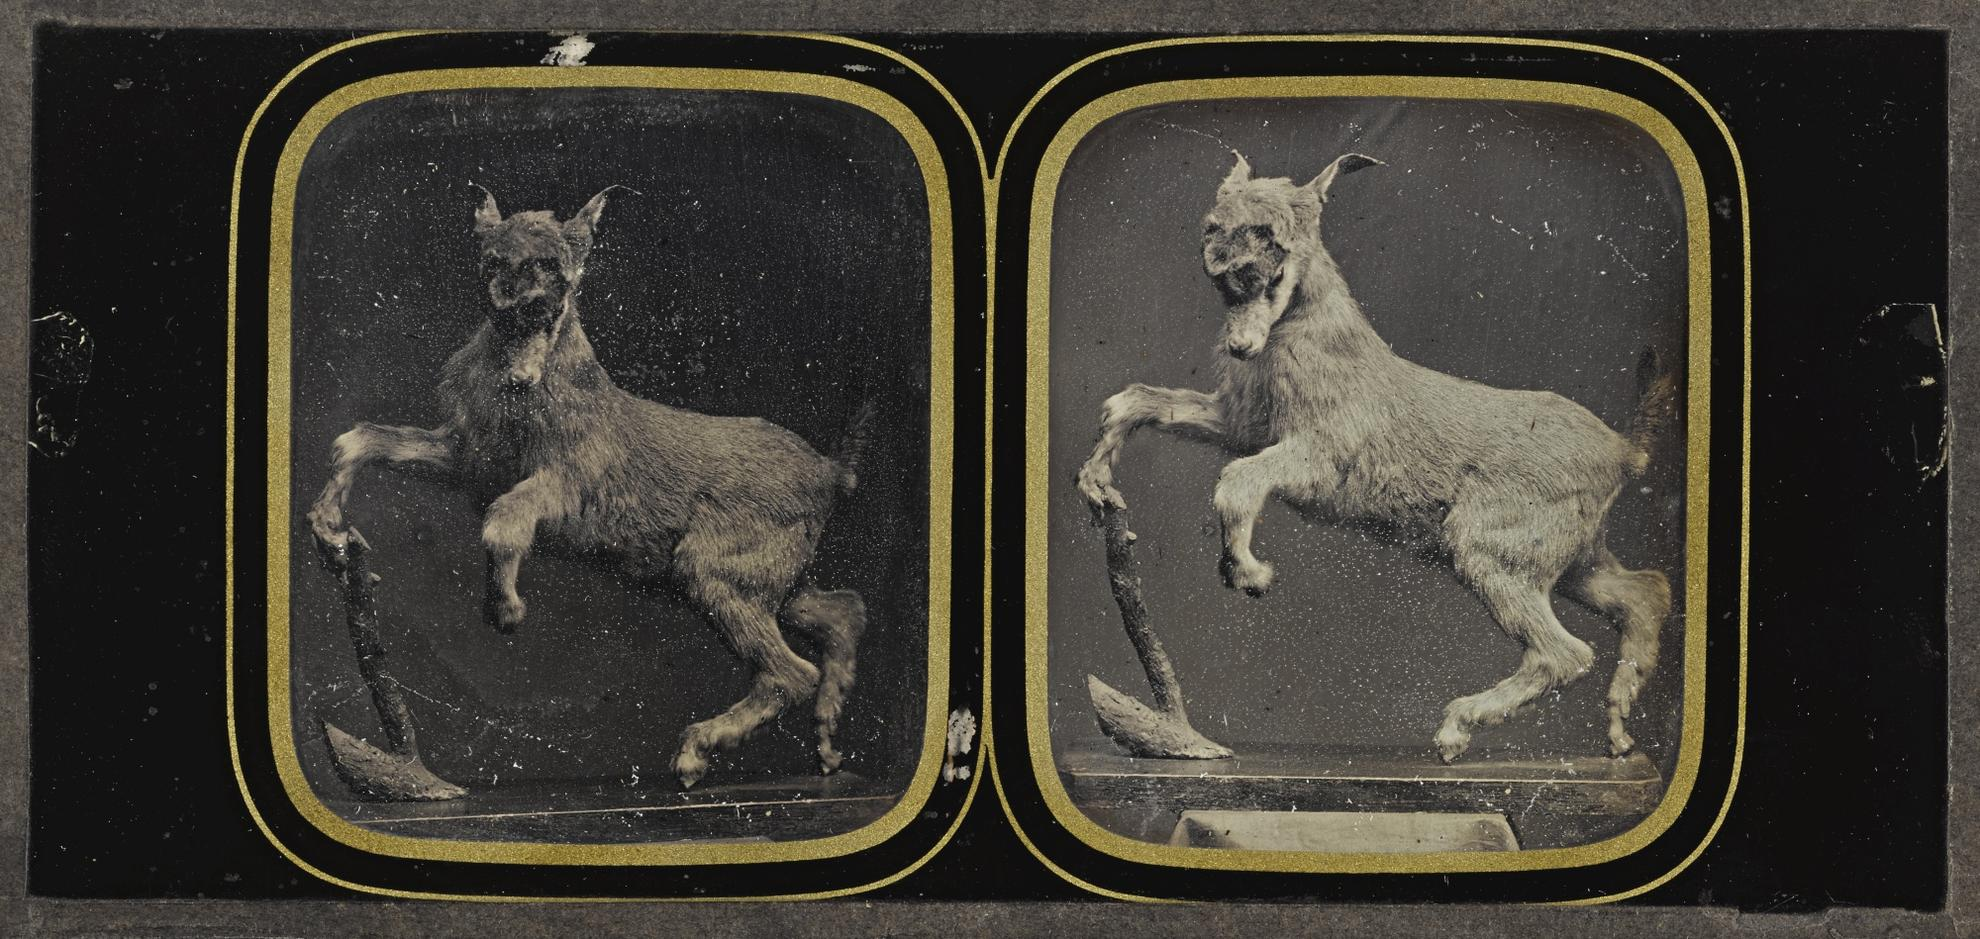 Attributed To Louis Jules Duboscq - Taxidermy Goat Display-1855